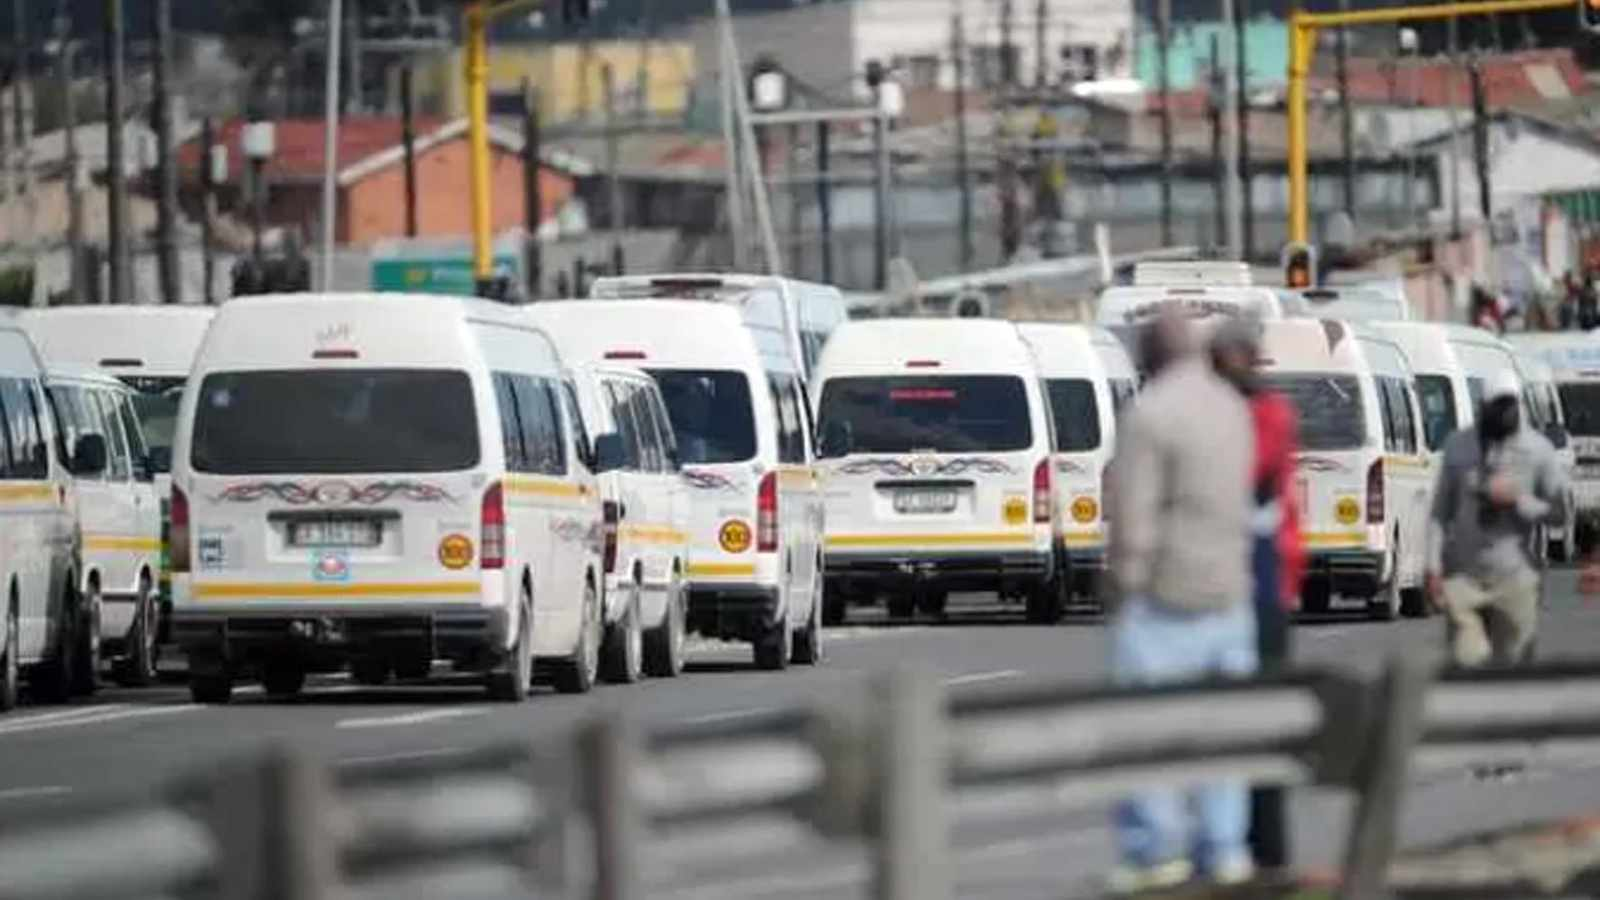 WATCH: Minister's taxi plan